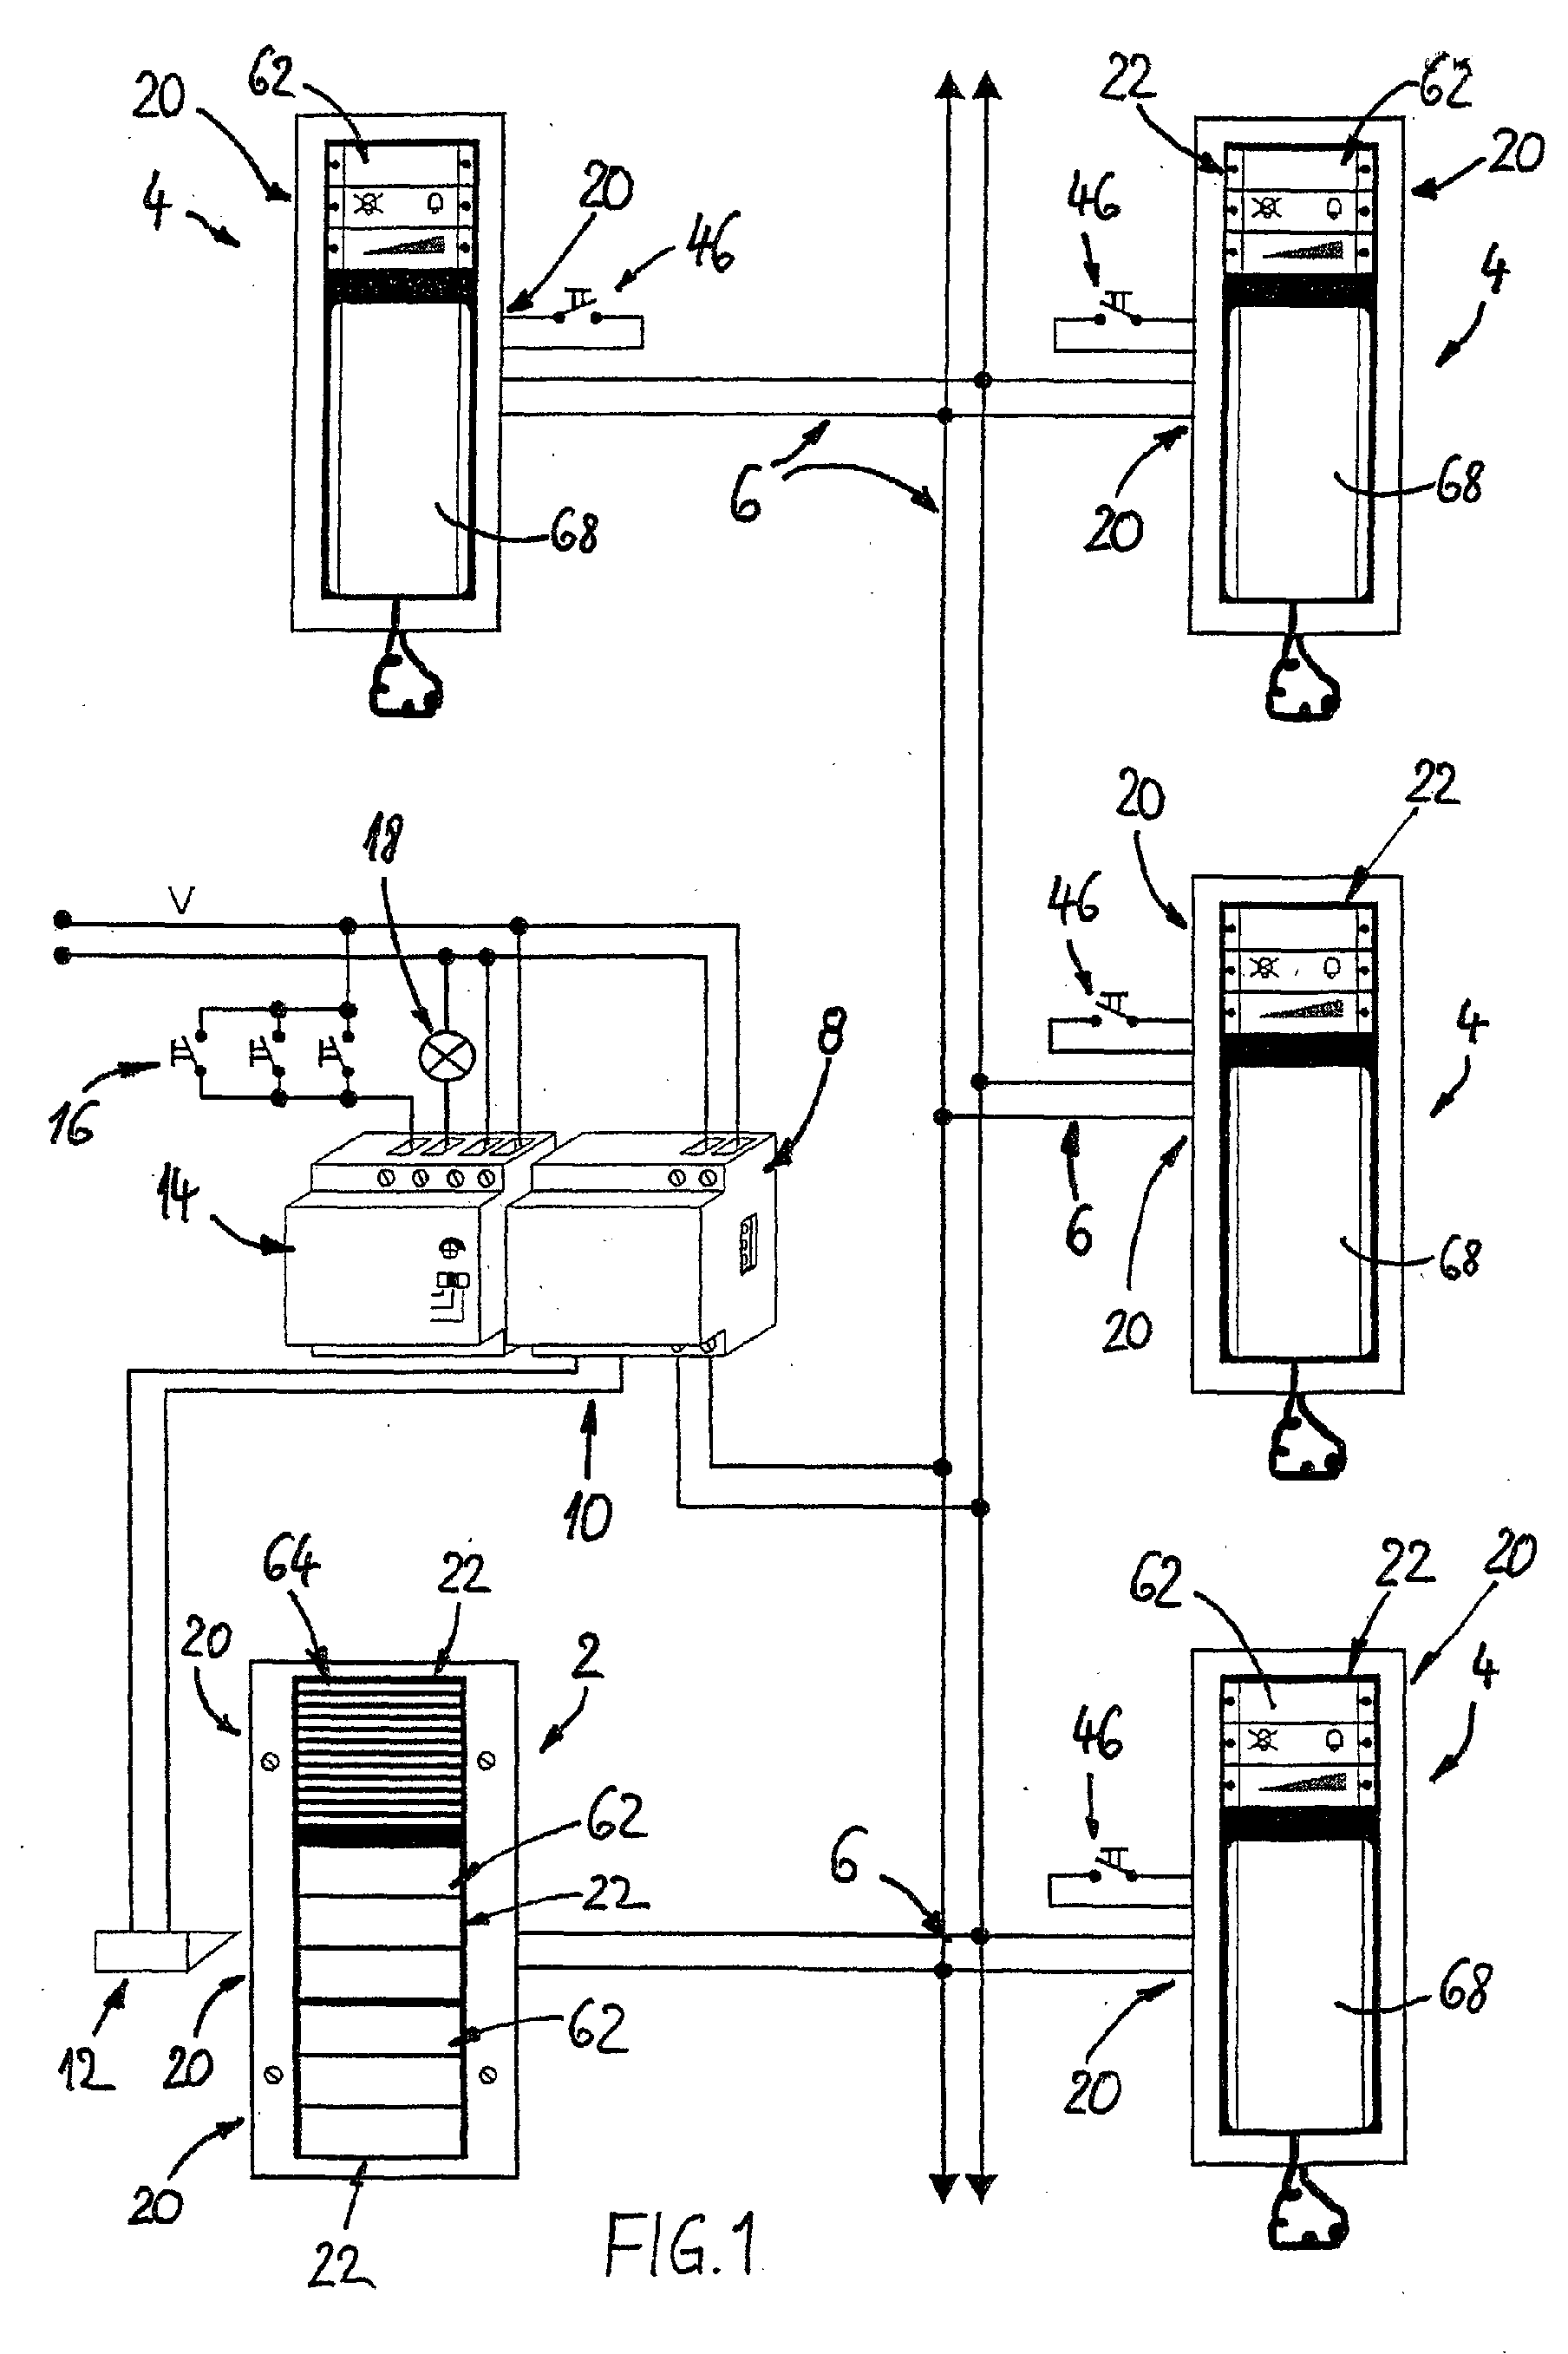 patent ep1320244a1 - modular door intercom system